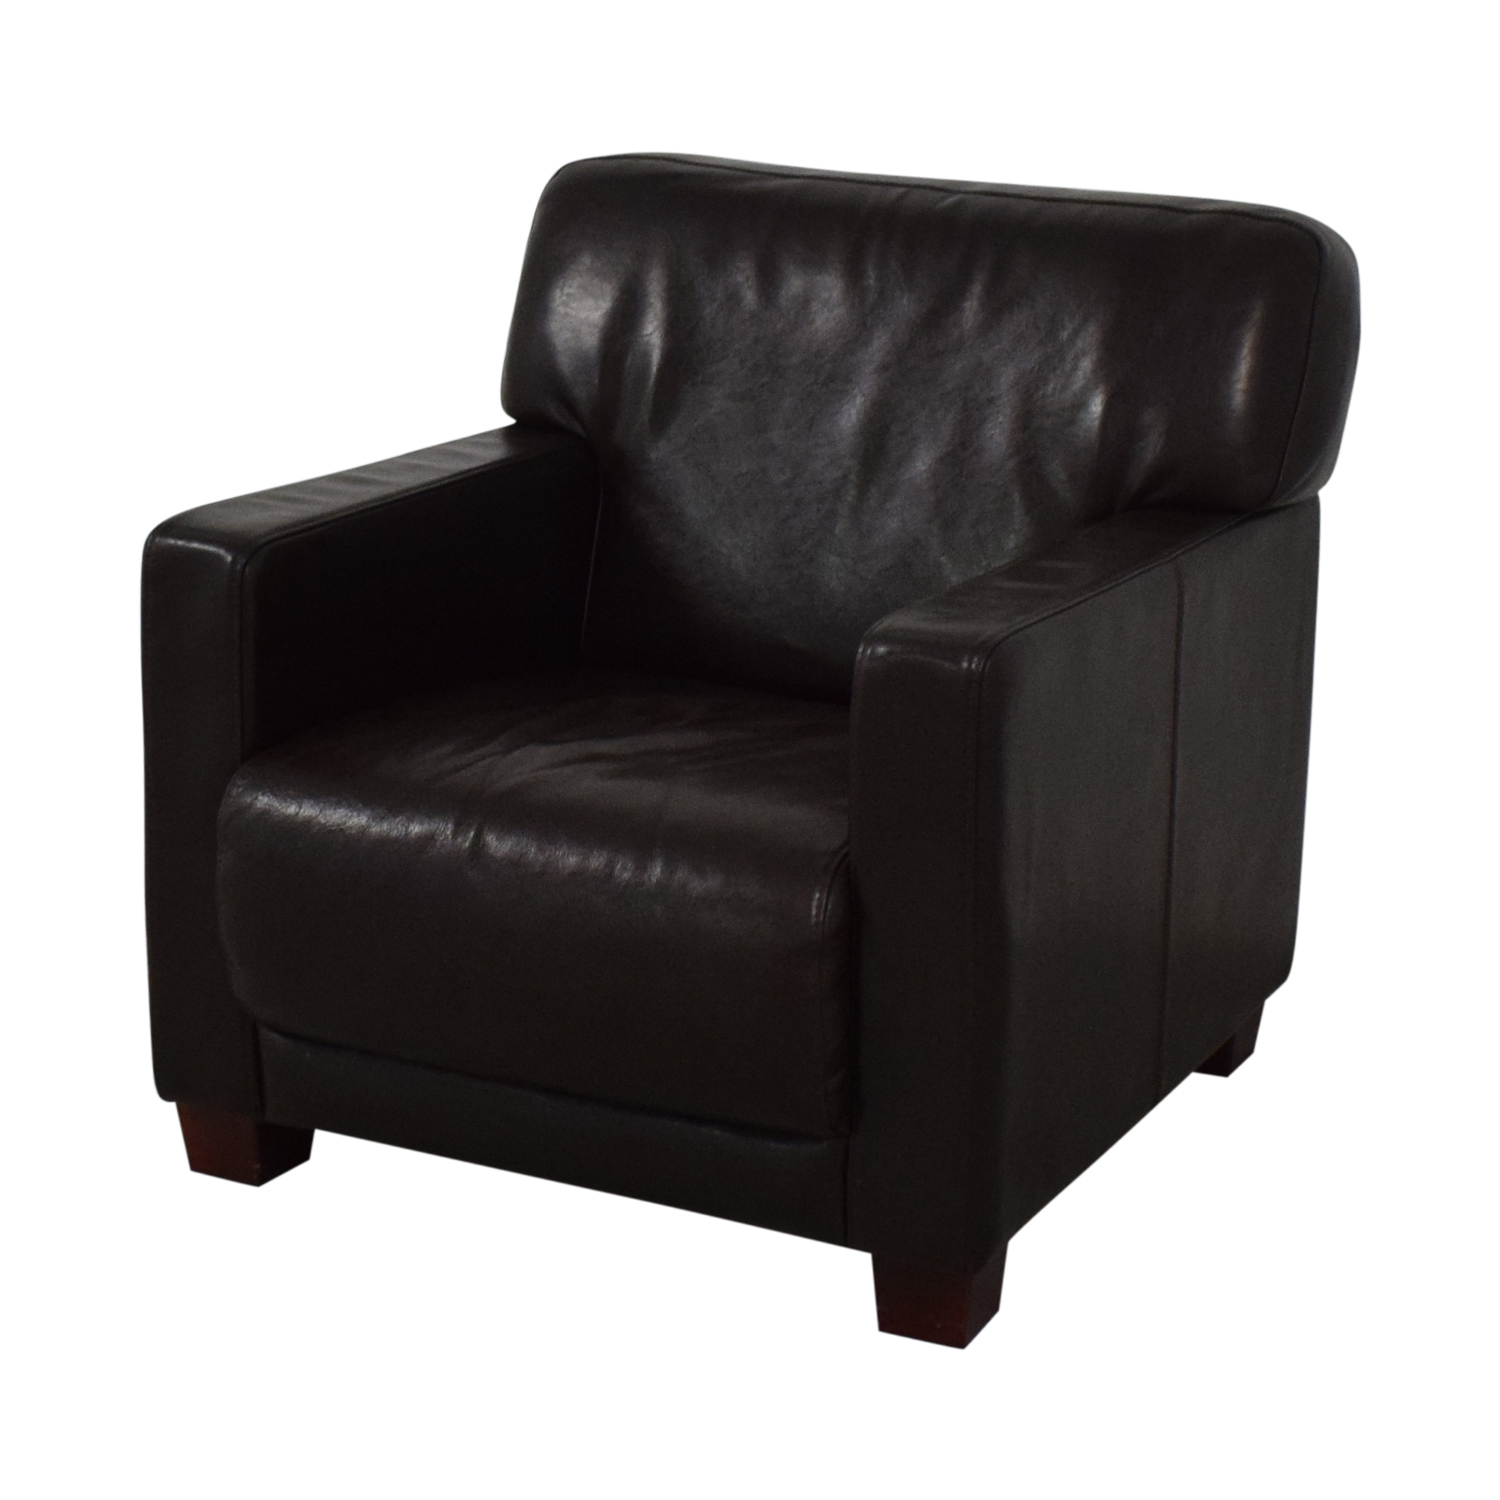 Door Store Door Store Club Armchair on sale